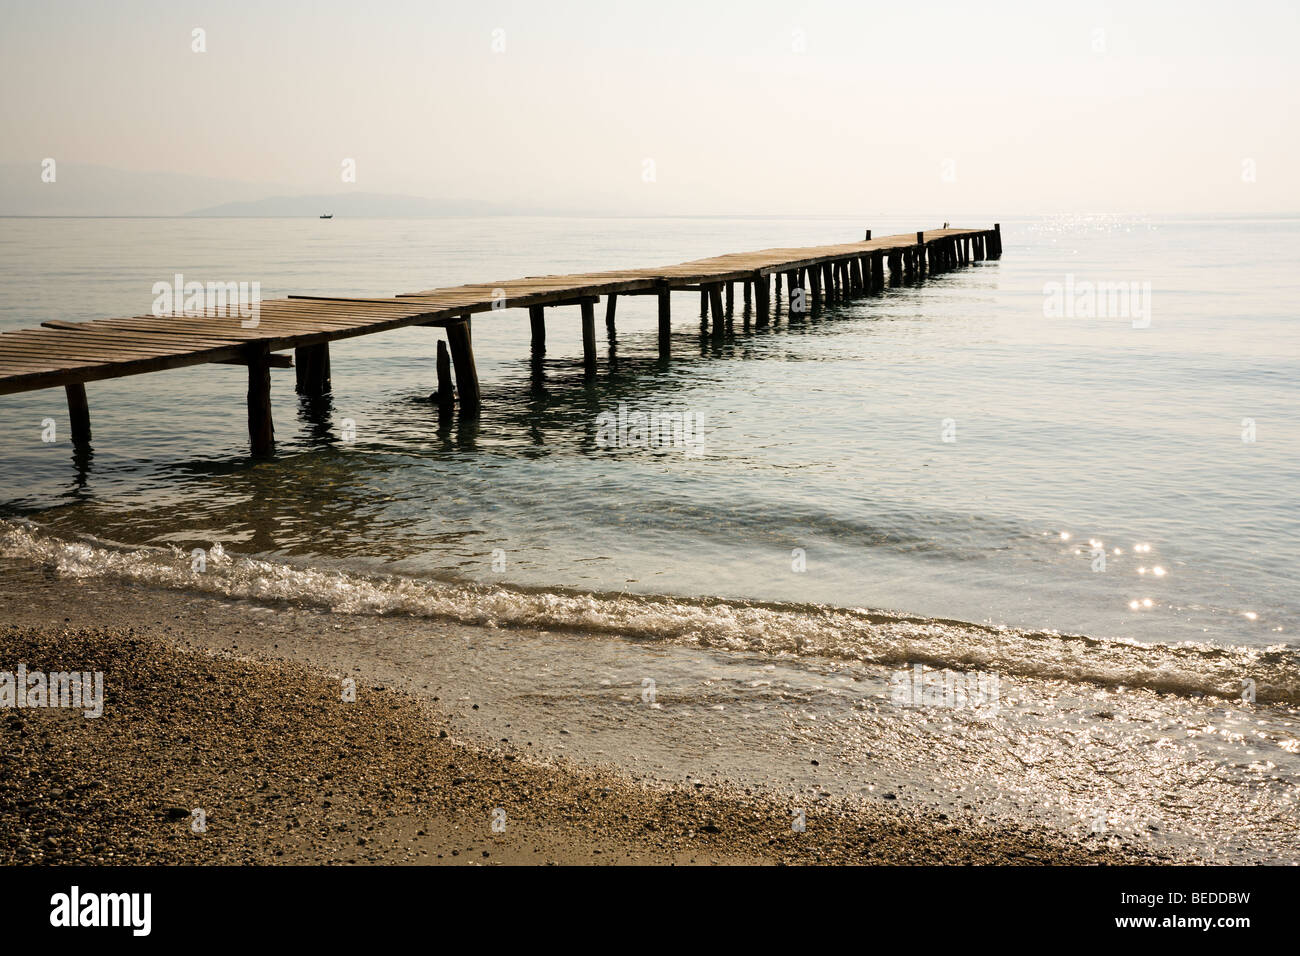 wooden jetty at the beach of Ipsos, Corfu, Greece, in the morning - Stock Image